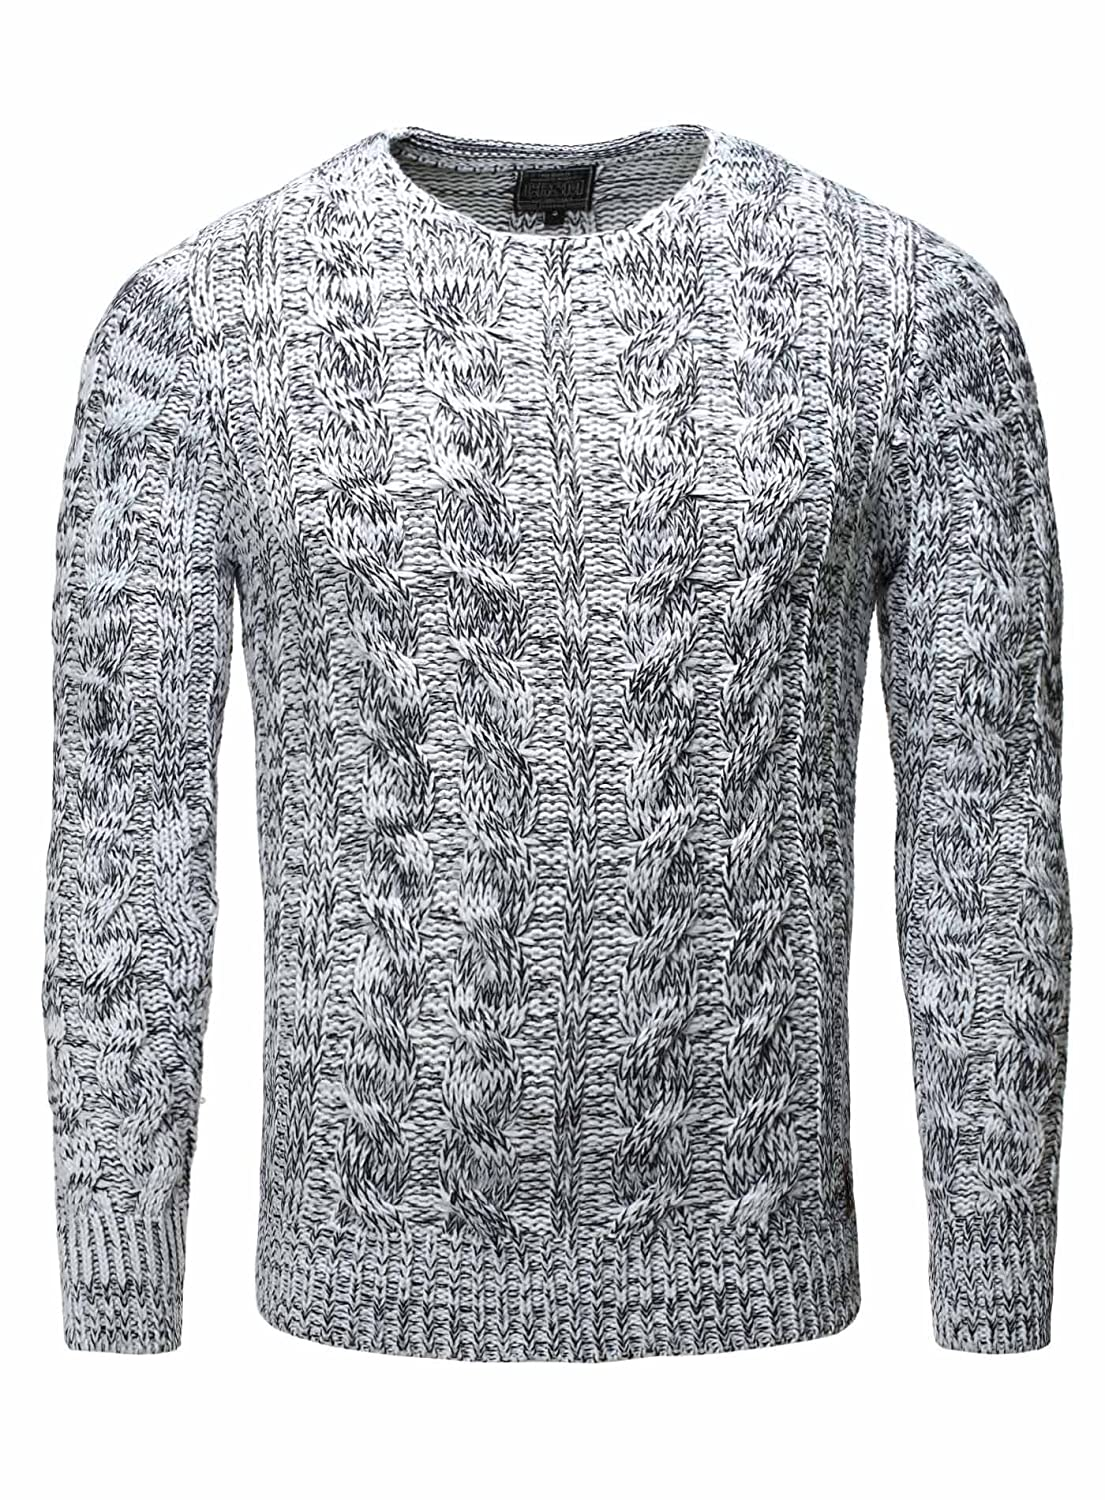 Knitted Jumper Men Sweater Carisma white